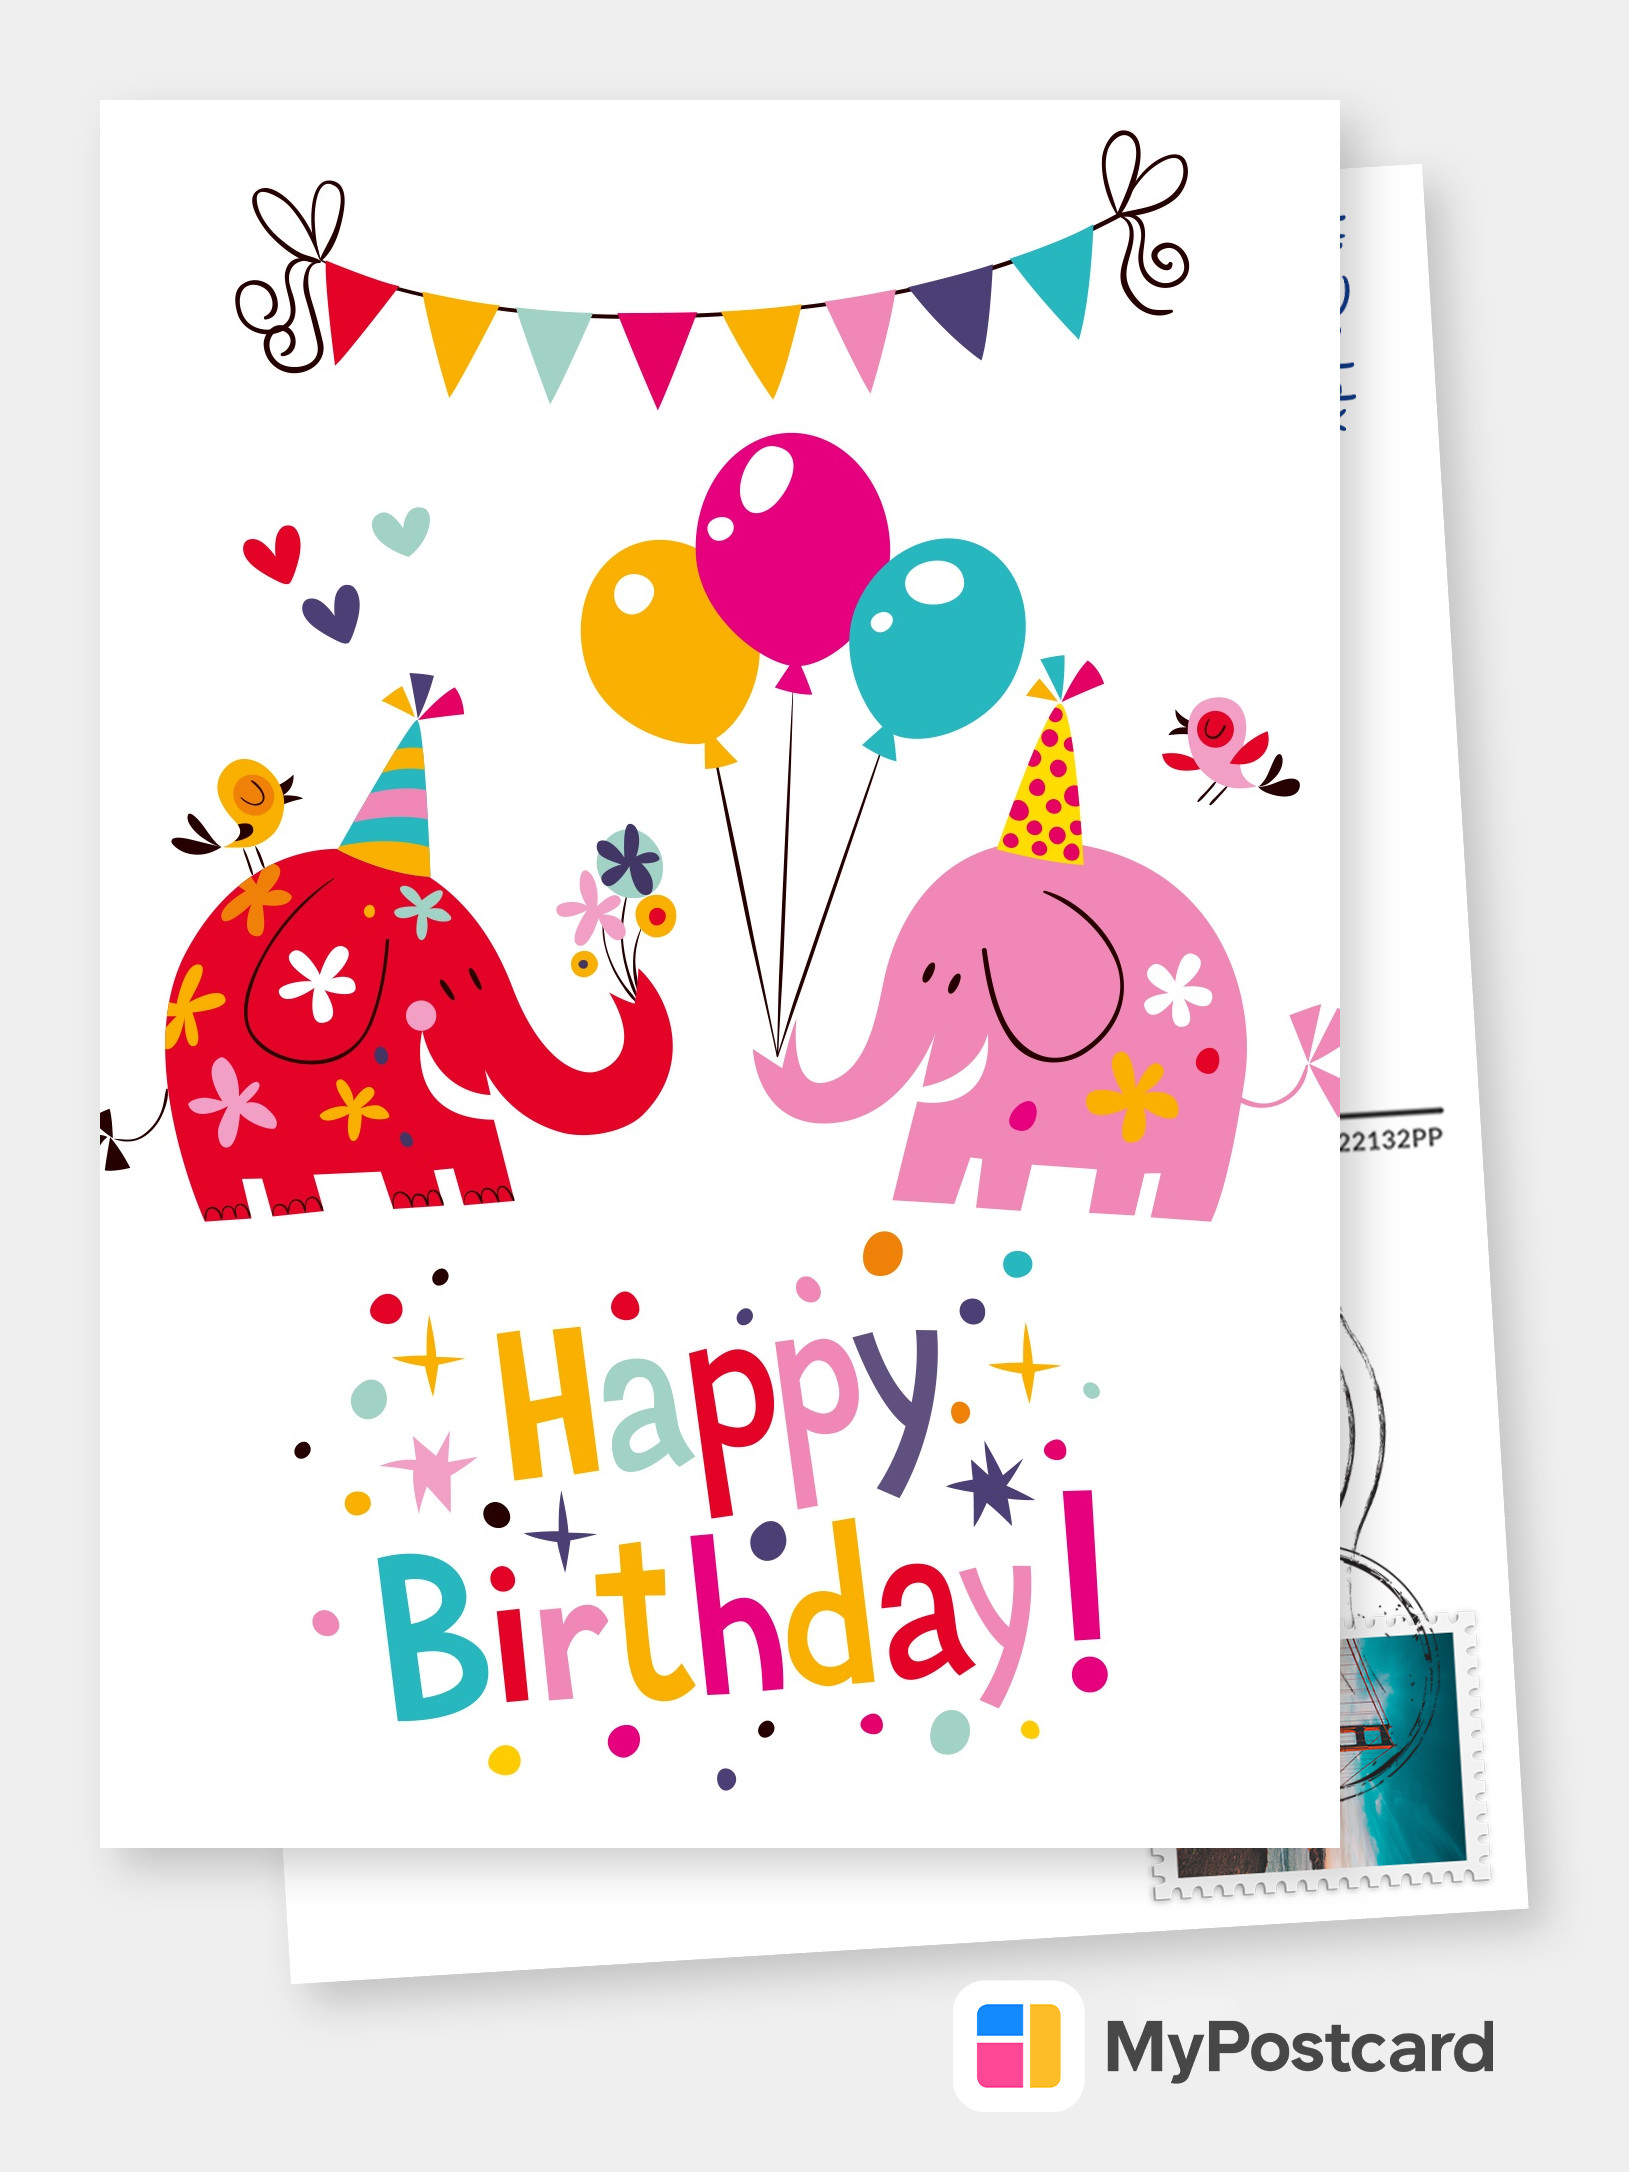 Create Your Own Happy Birthday Cards Free Printable Templates Printed Mailed For You Photo Cards Photo Postcards Greeting Cards Online Sevice Postcard App